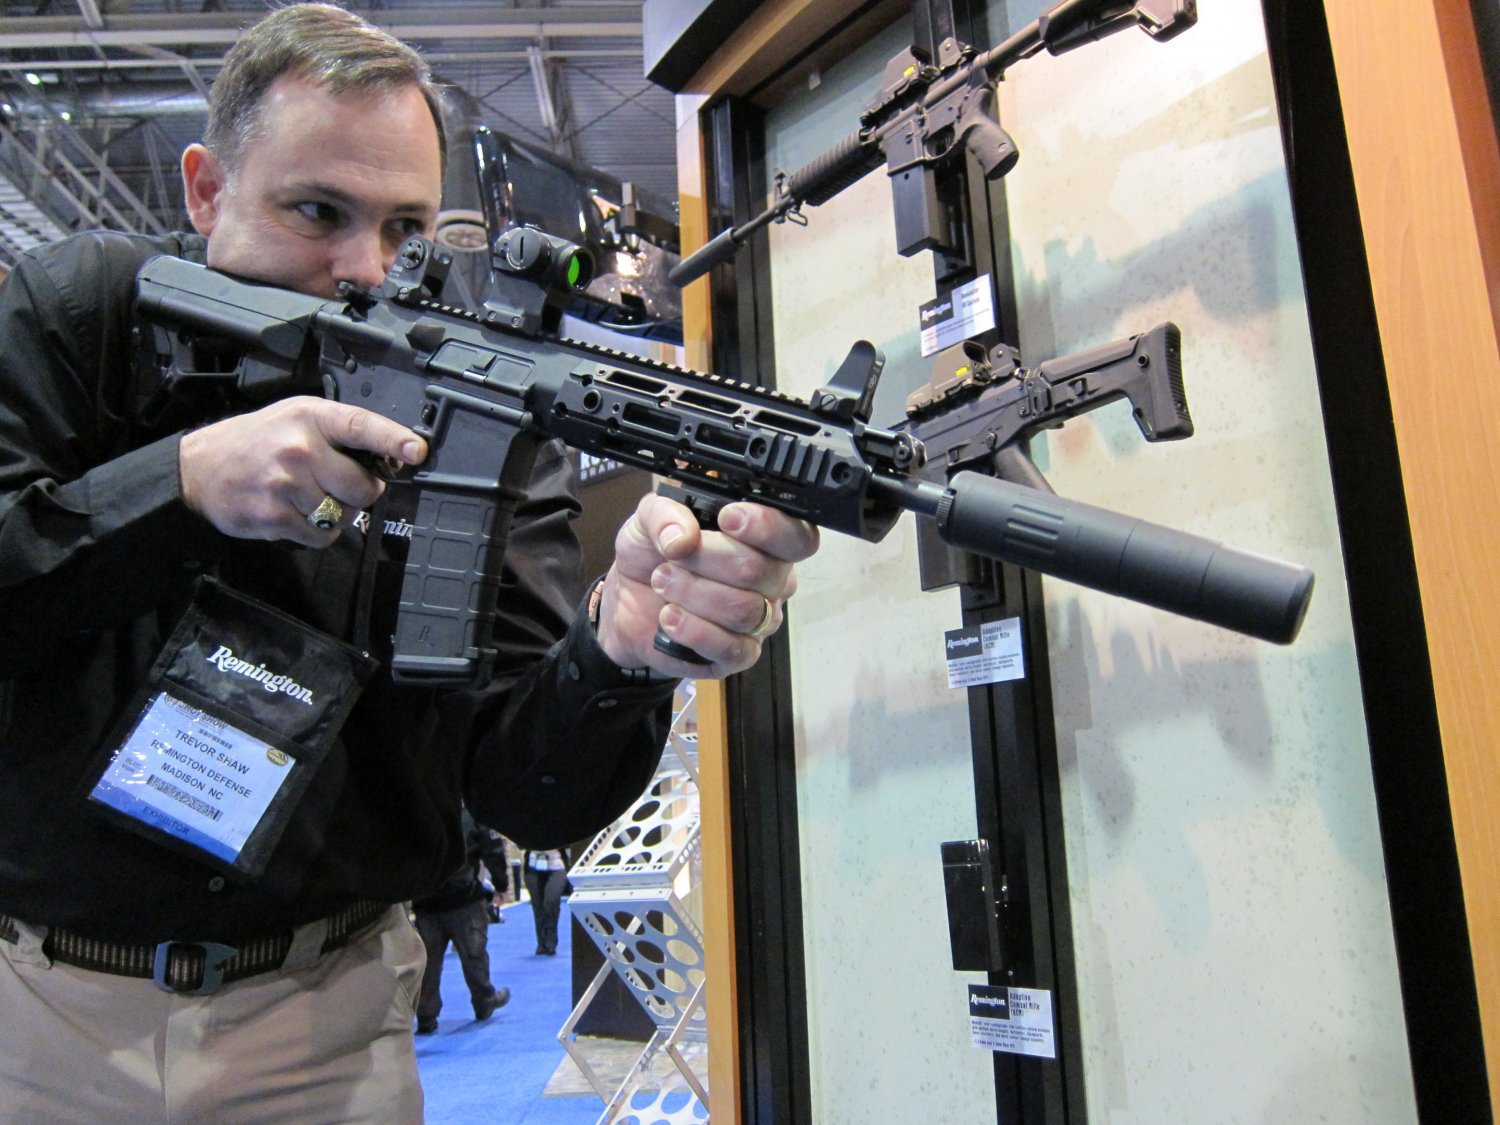 SHOT Show 2010 Remington Military R4 Gas Piston Op Rod AR 5.56mm 6 Remington Military R 4 Gas Piston Carbine (GPC) Tactical AR Carbine with Proprietary Monolithic Rail System (Pics!)